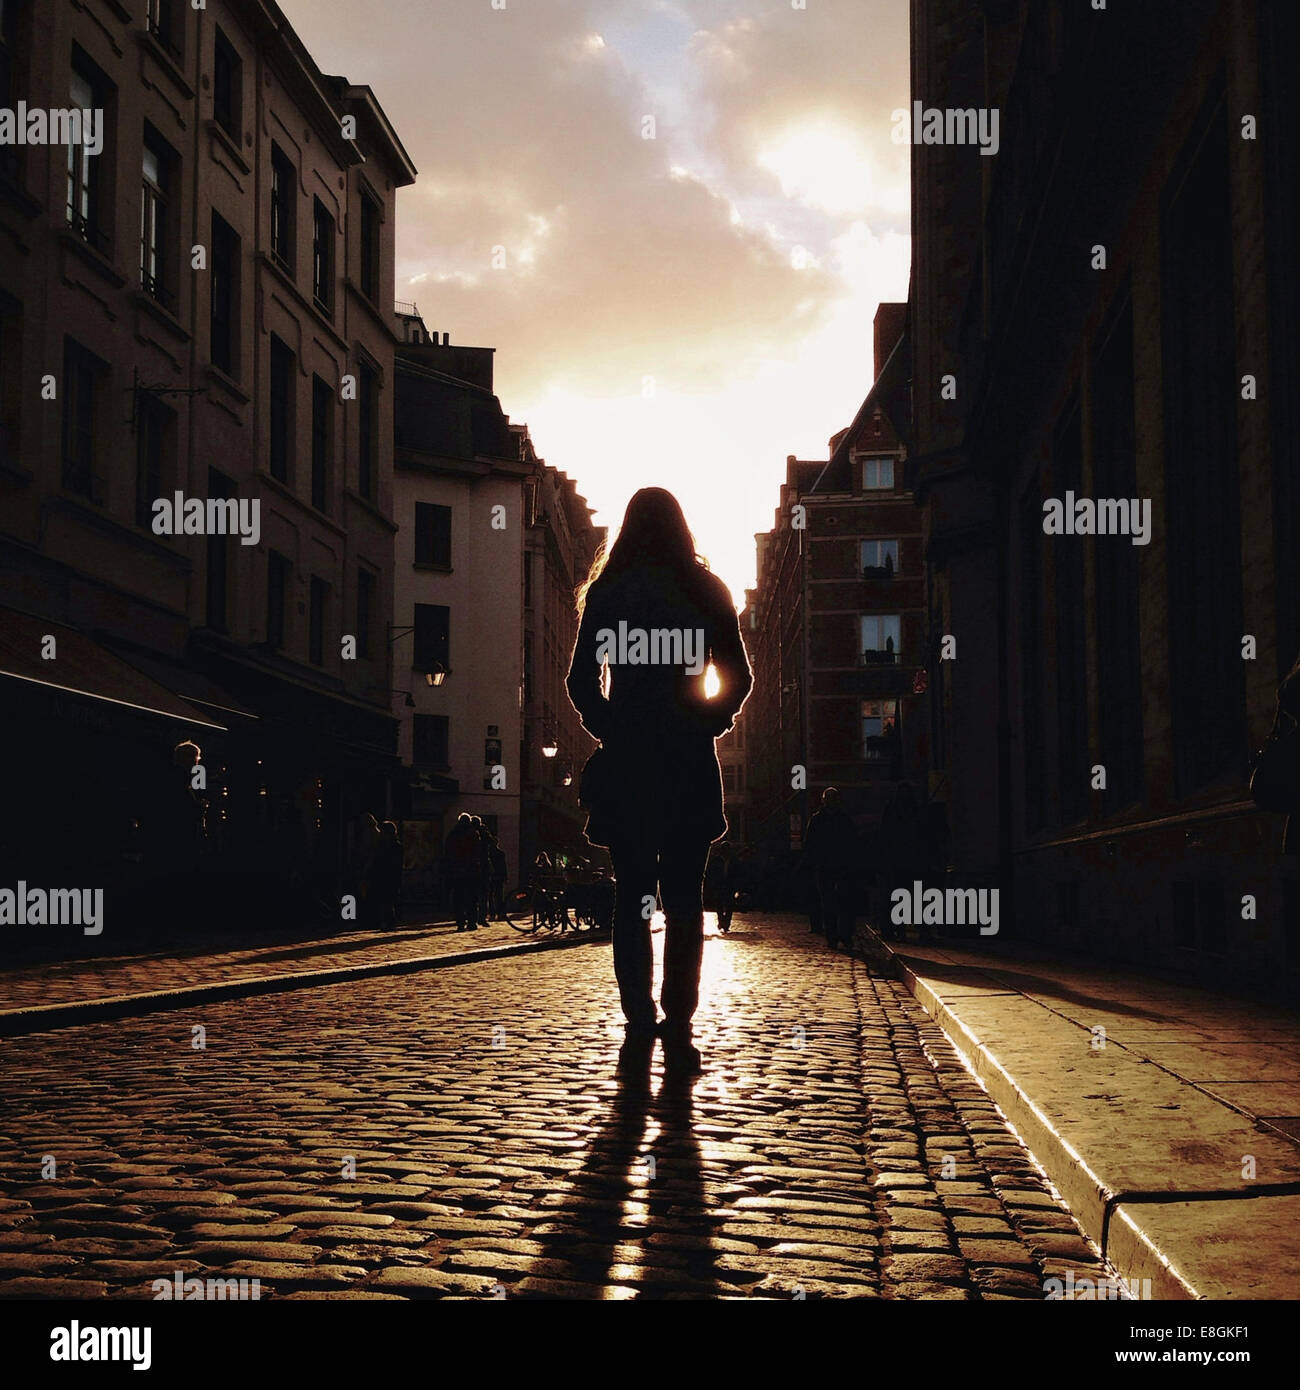 Rear view of woman standing in street - Stock Image